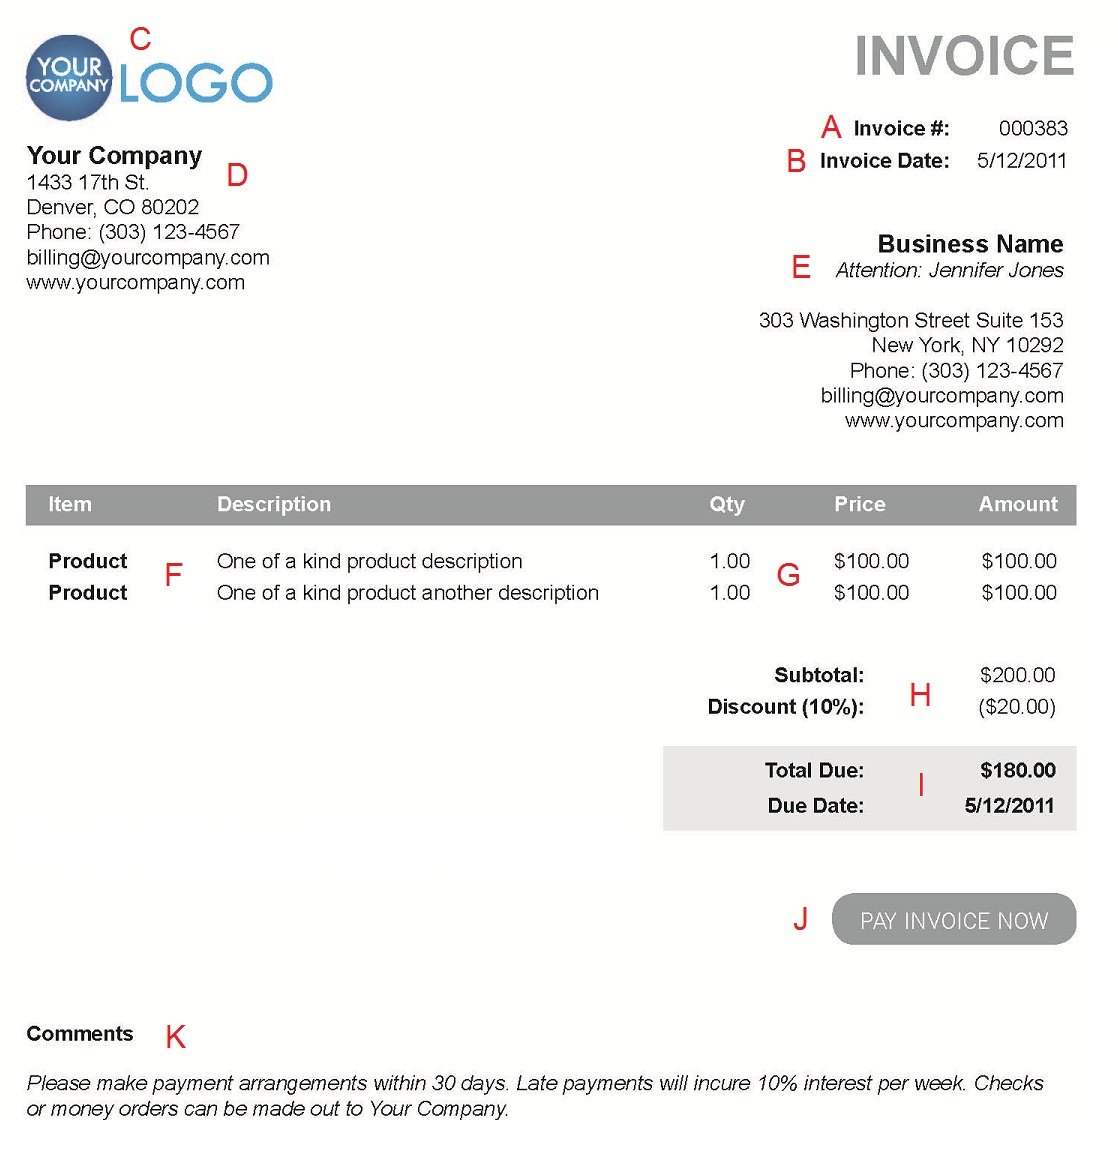 Coolmathgamesus  Wonderful The  Different Sections Of An Electronic Payment Invoice With Fair A  With Alluring Quickbooks Invoicing Also Small Business Invoice Software In Addition My Invoices And Estimates Deluxe And Invoice Lite As Well As Free Printable Invoice Template Additionally Simple Invoices From Paysimplecom With Coolmathgamesus  Fair The  Different Sections Of An Electronic Payment Invoice With Alluring A  And Wonderful Quickbooks Invoicing Also Small Business Invoice Software In Addition My Invoices And Estimates Deluxe From Paysimplecom